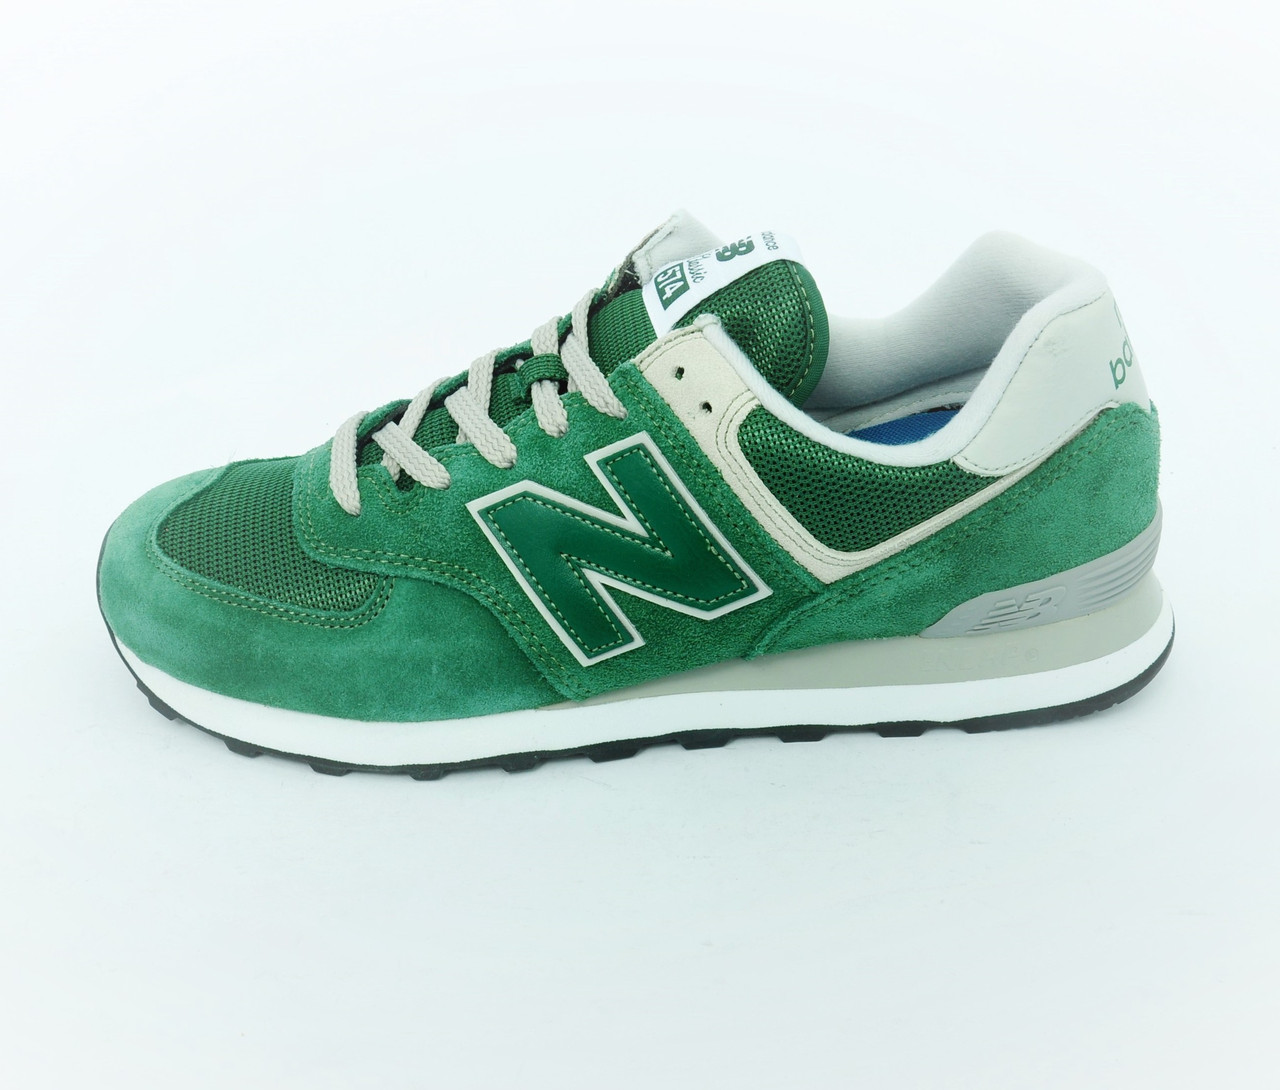 low priced da2be 08851 Мужские кроссовки New Balance ML574EGR